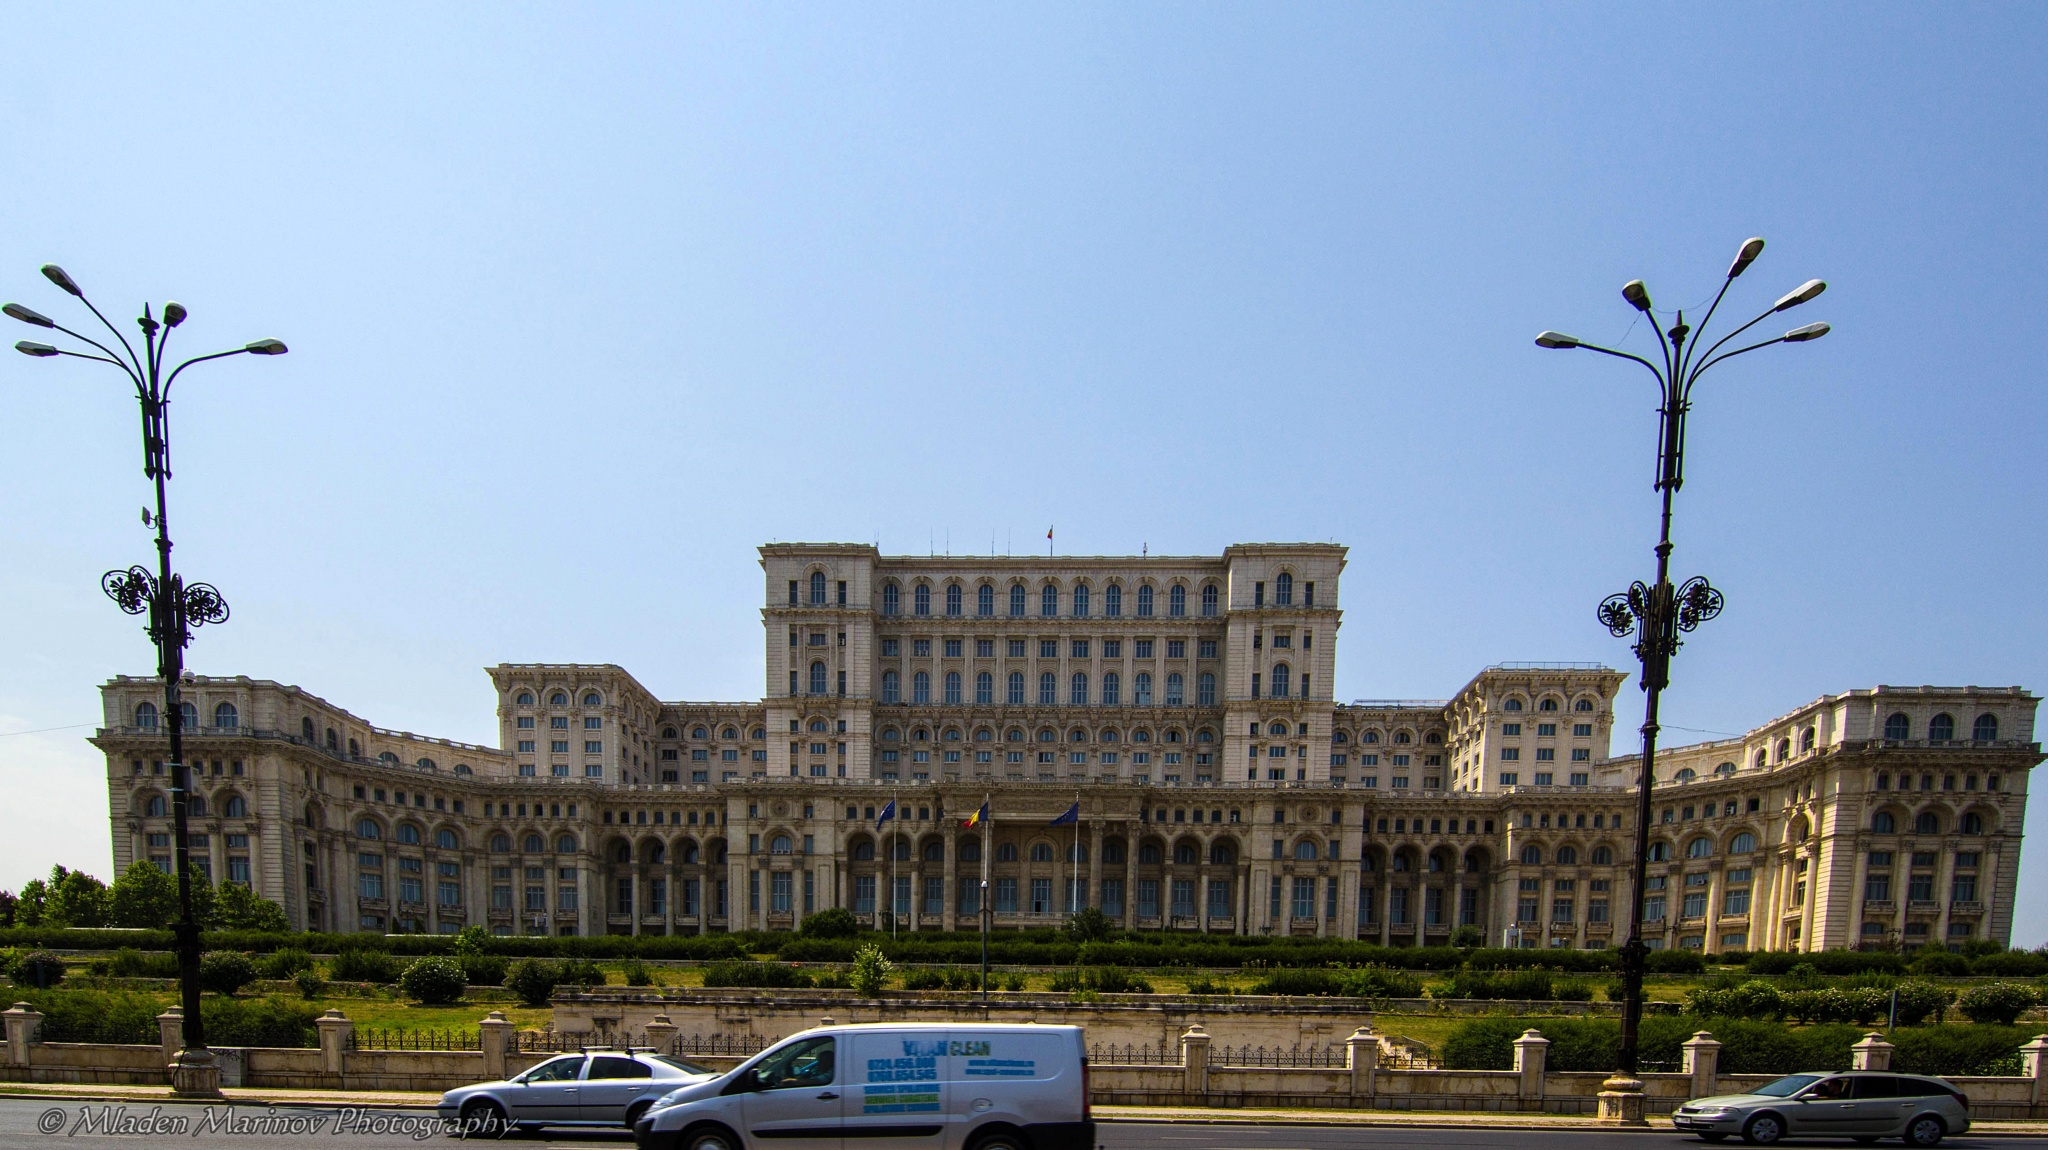 Palace of Parliament by Mladen Marinov (MM)